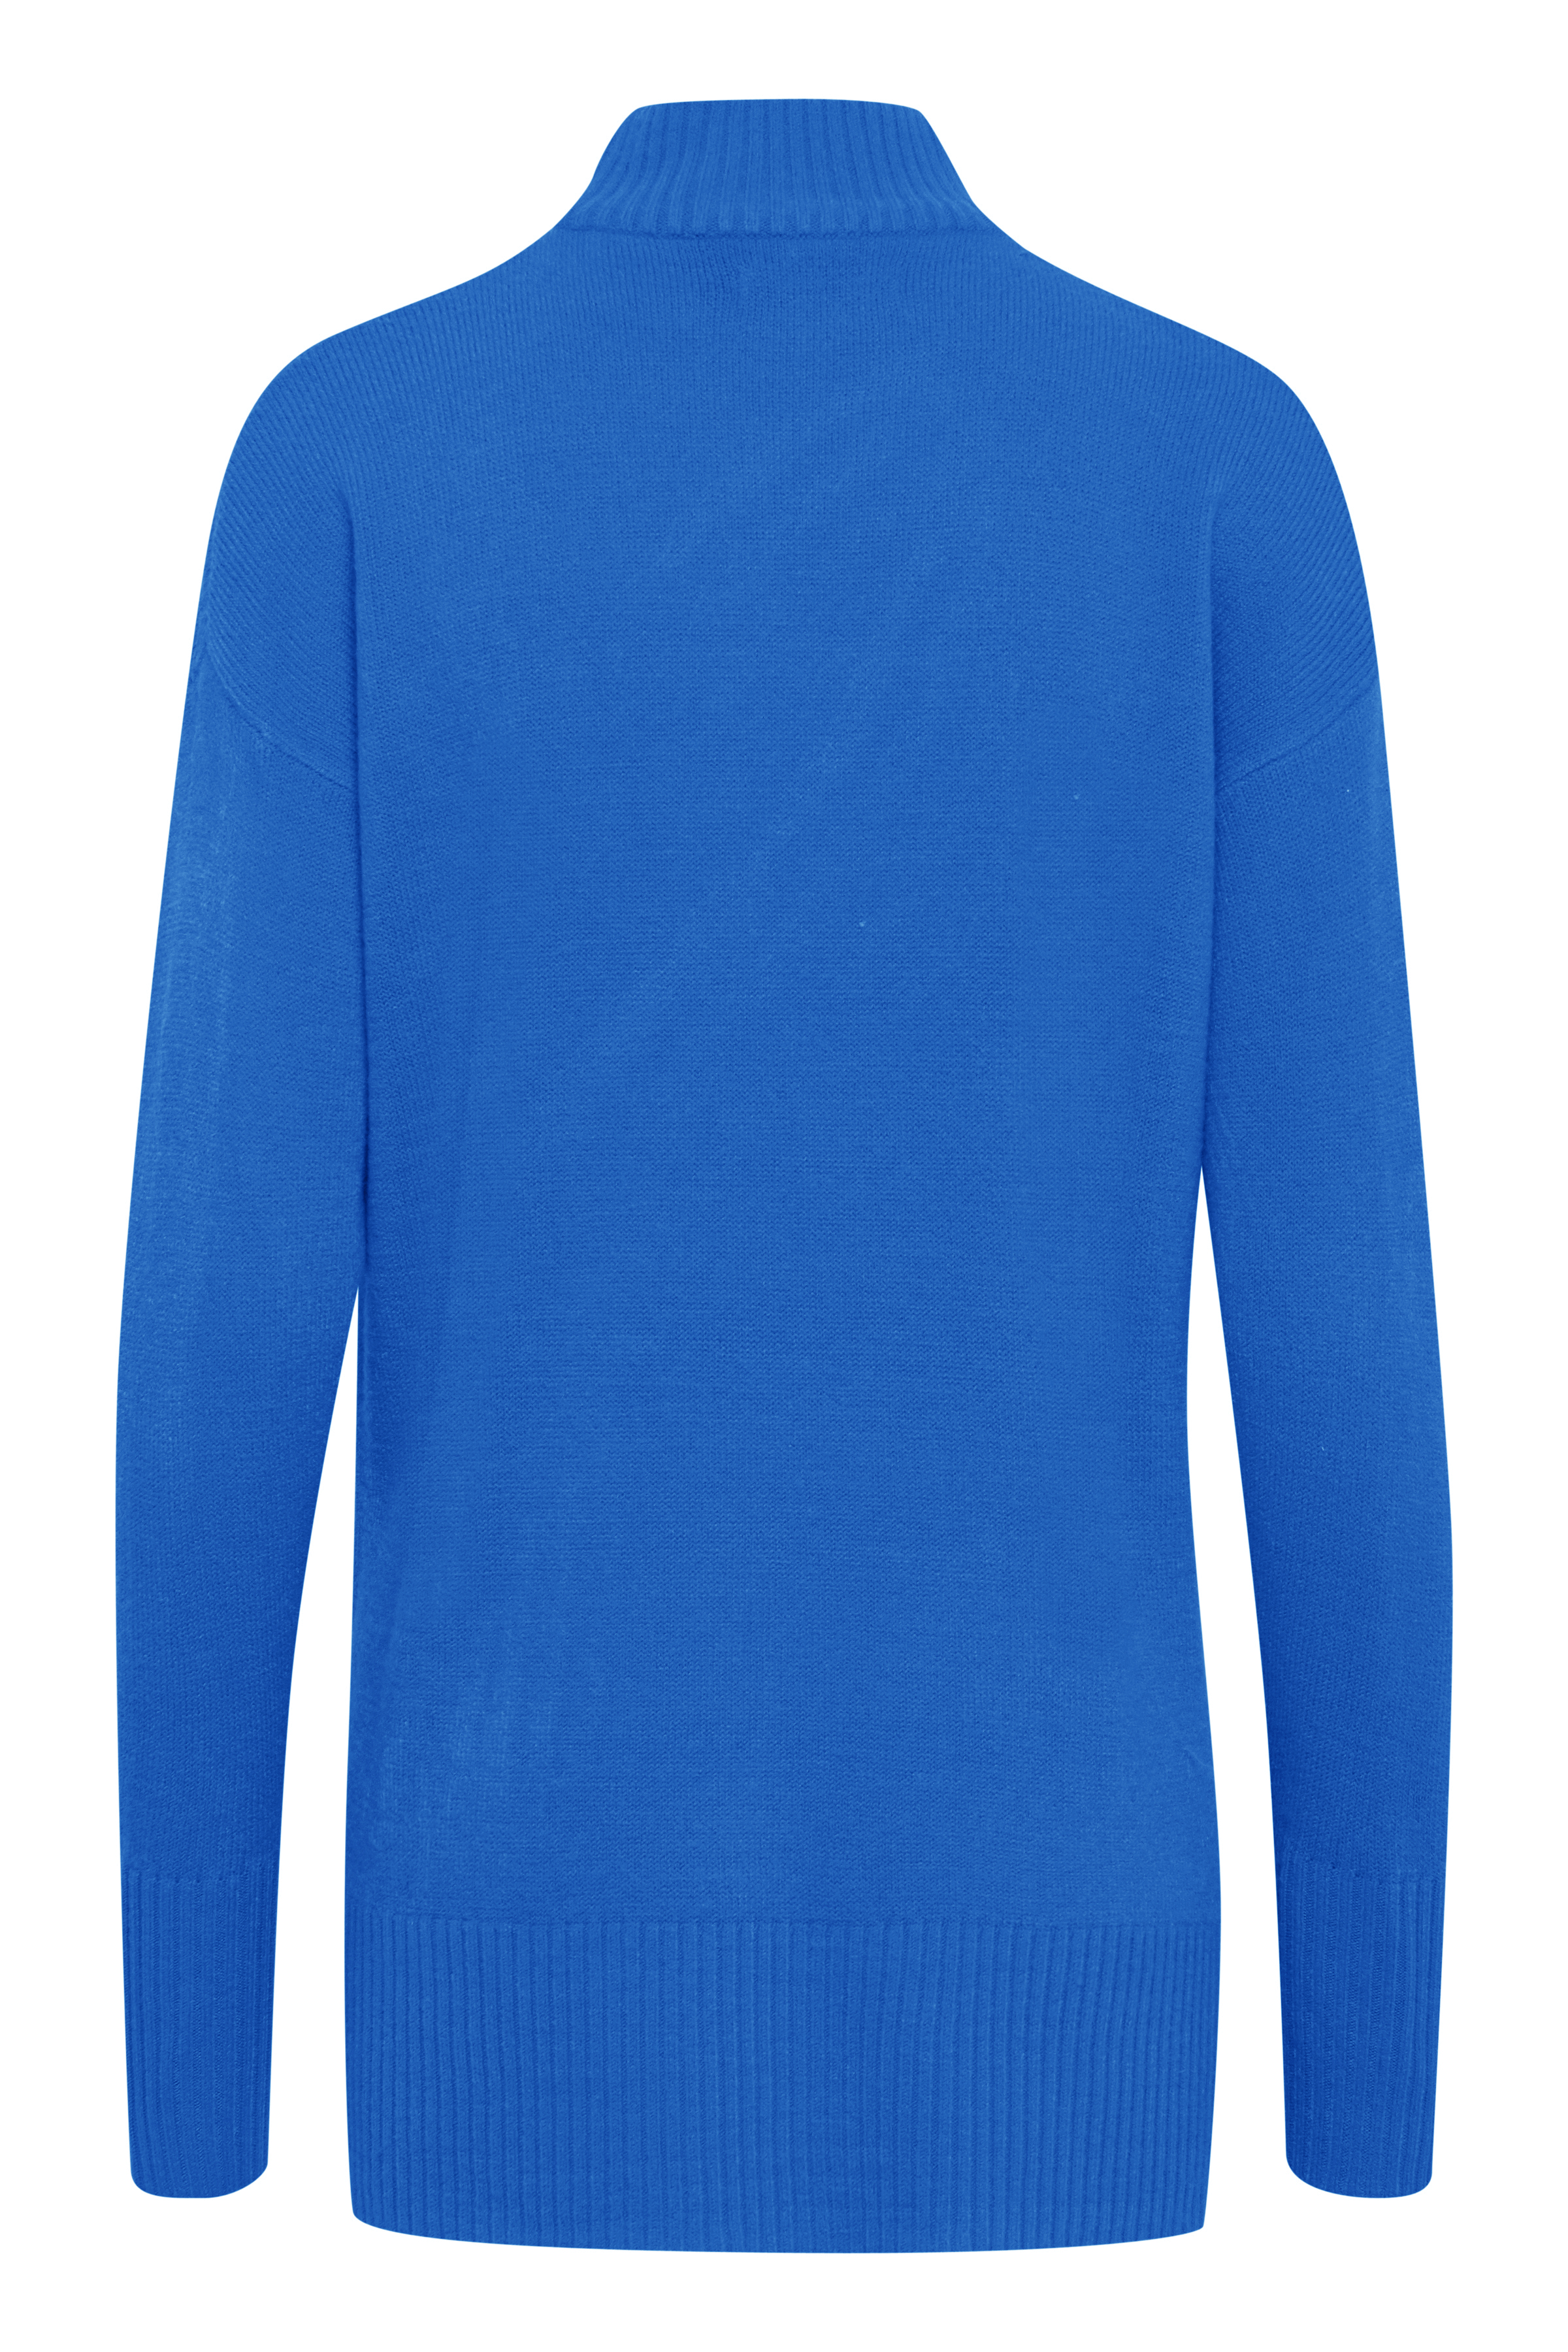 Princess Blue Strikpullover fra b.young – Køb Princess Blue Strikpullover fra str. XS-XXL her